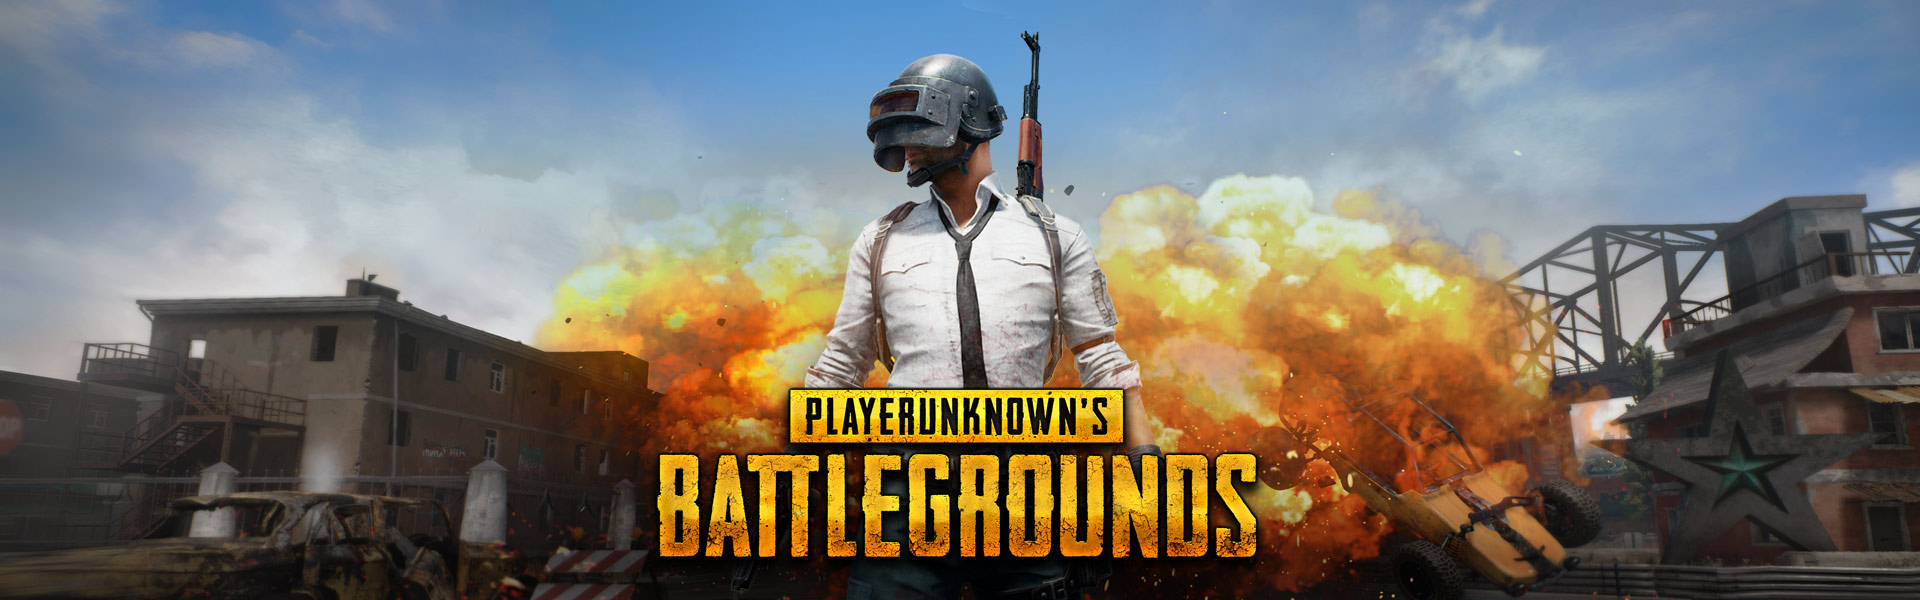 Battlegrounds hero